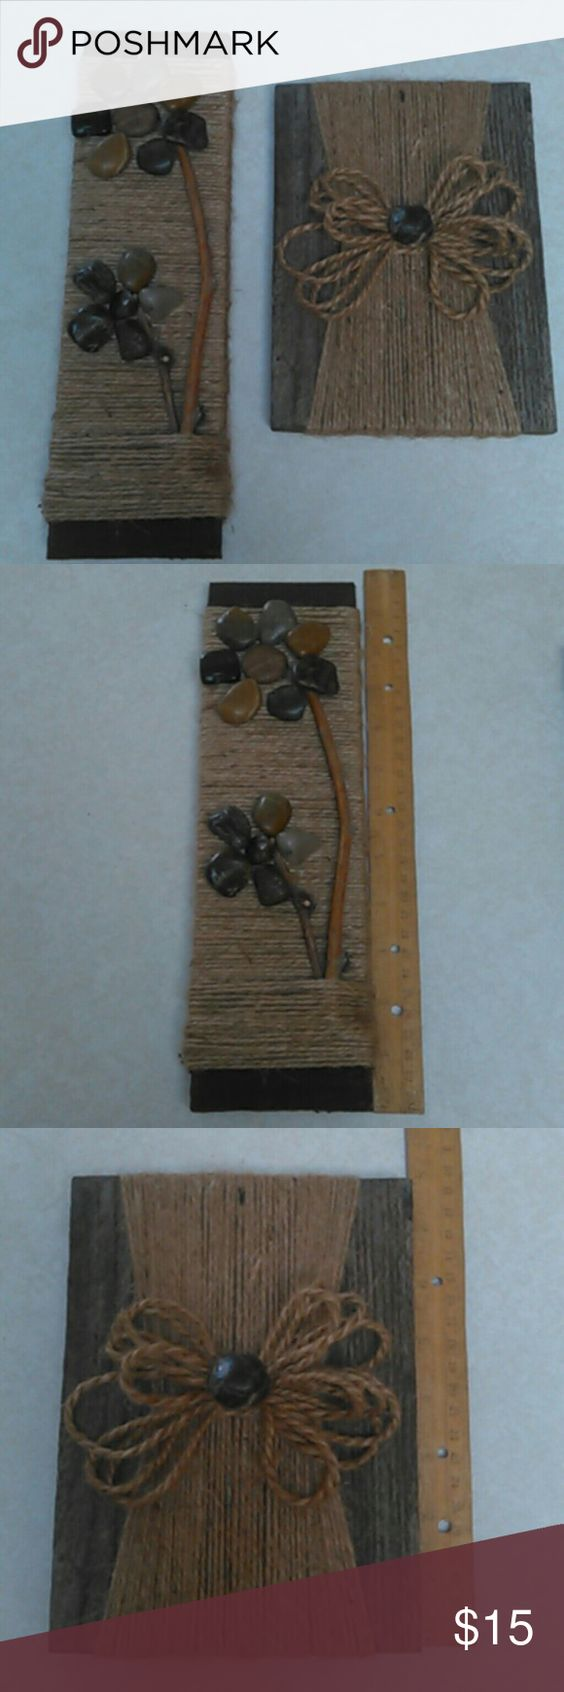 Wall decor Lot of 2 Handmade wall decor- rough cut boards ** I am not a professional - just have fun making things** Other